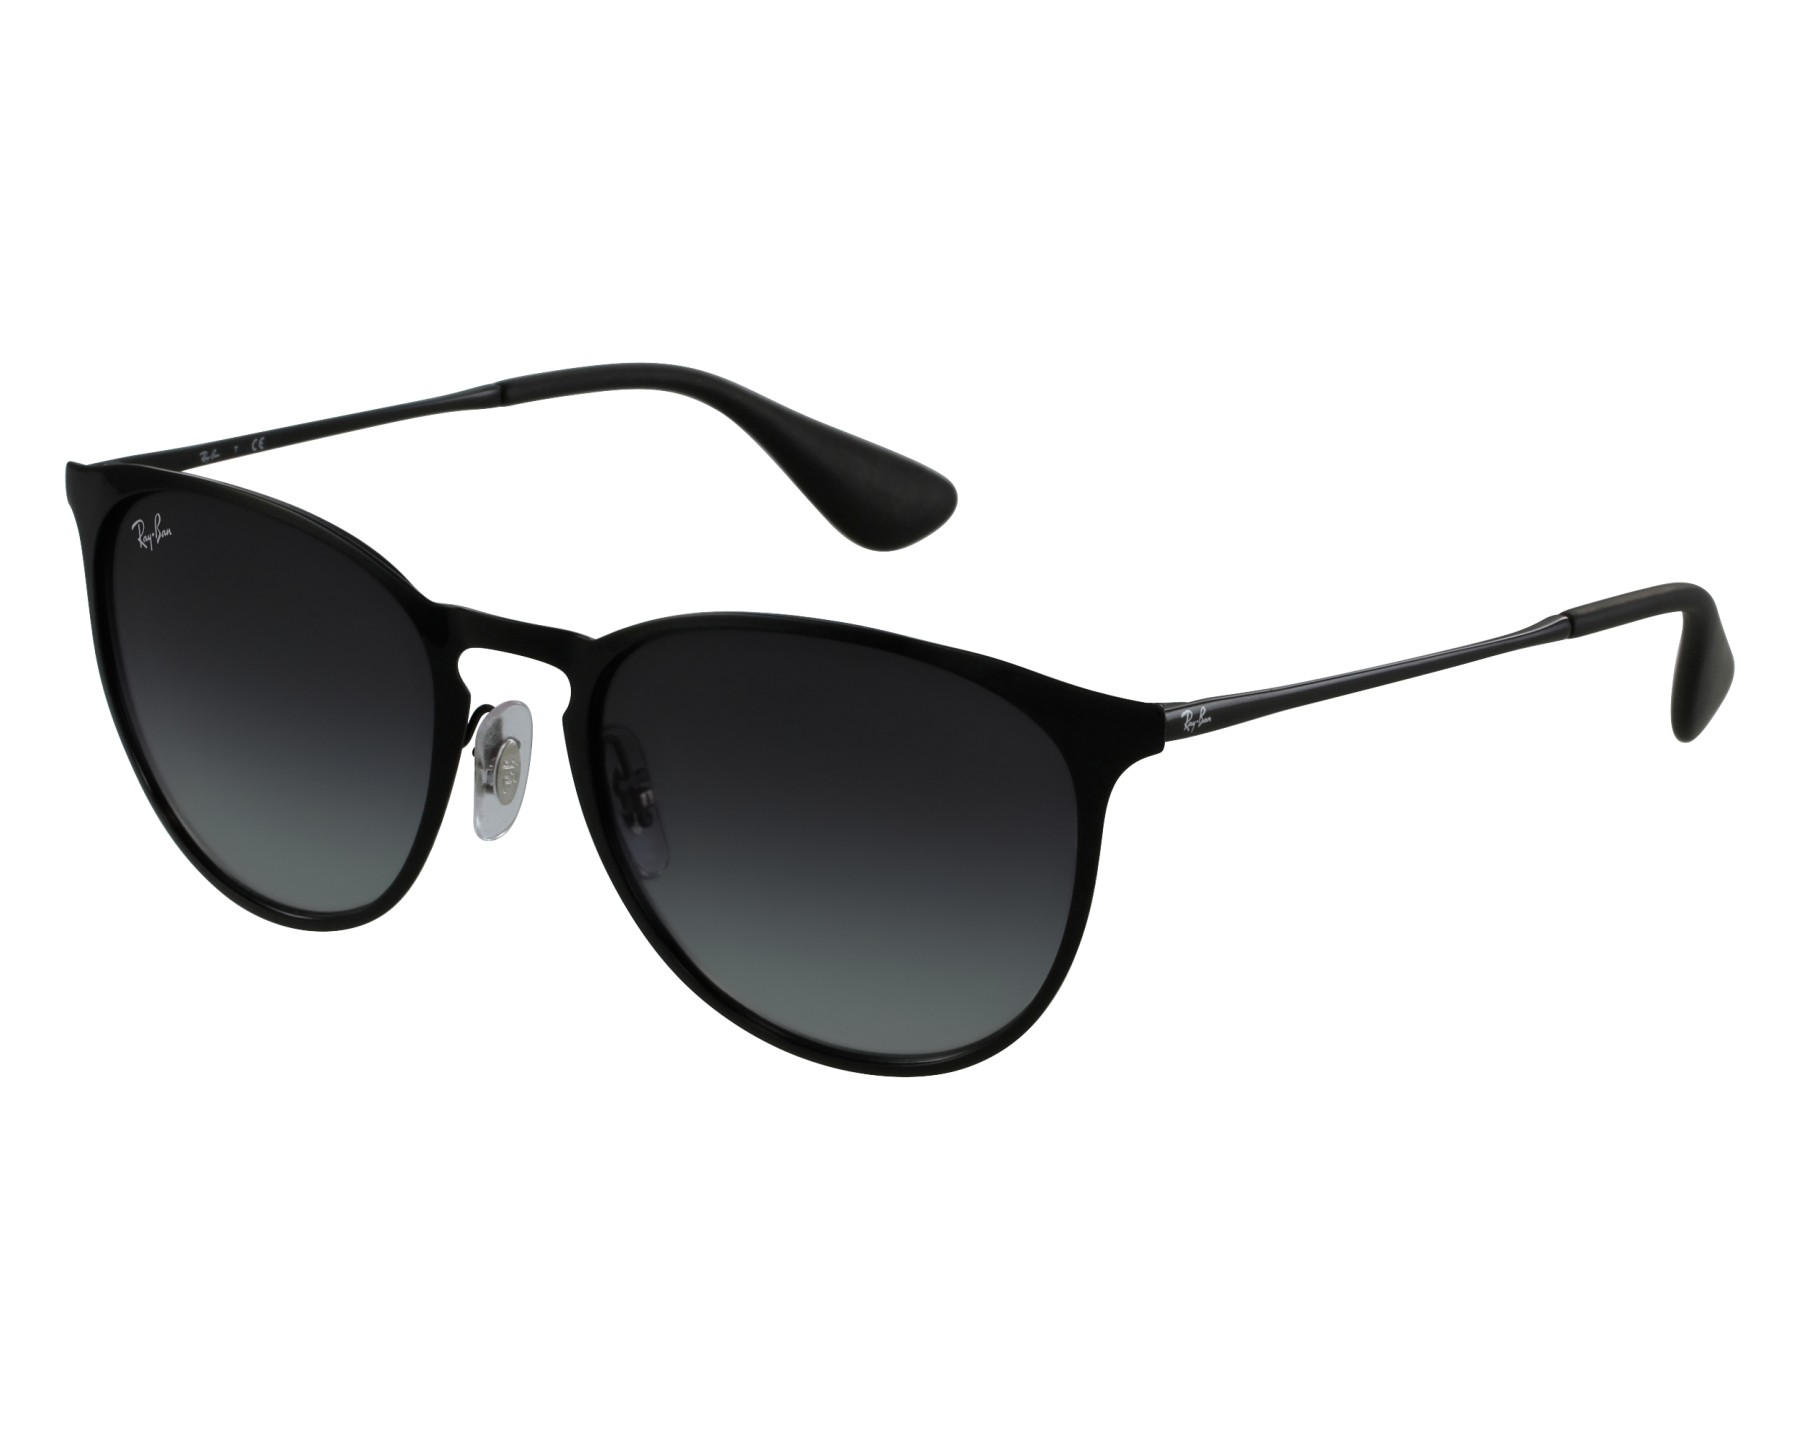 a86ede6271 Sunglasses Ray-Ban RB-3539 002 8G 54-19 Black front view